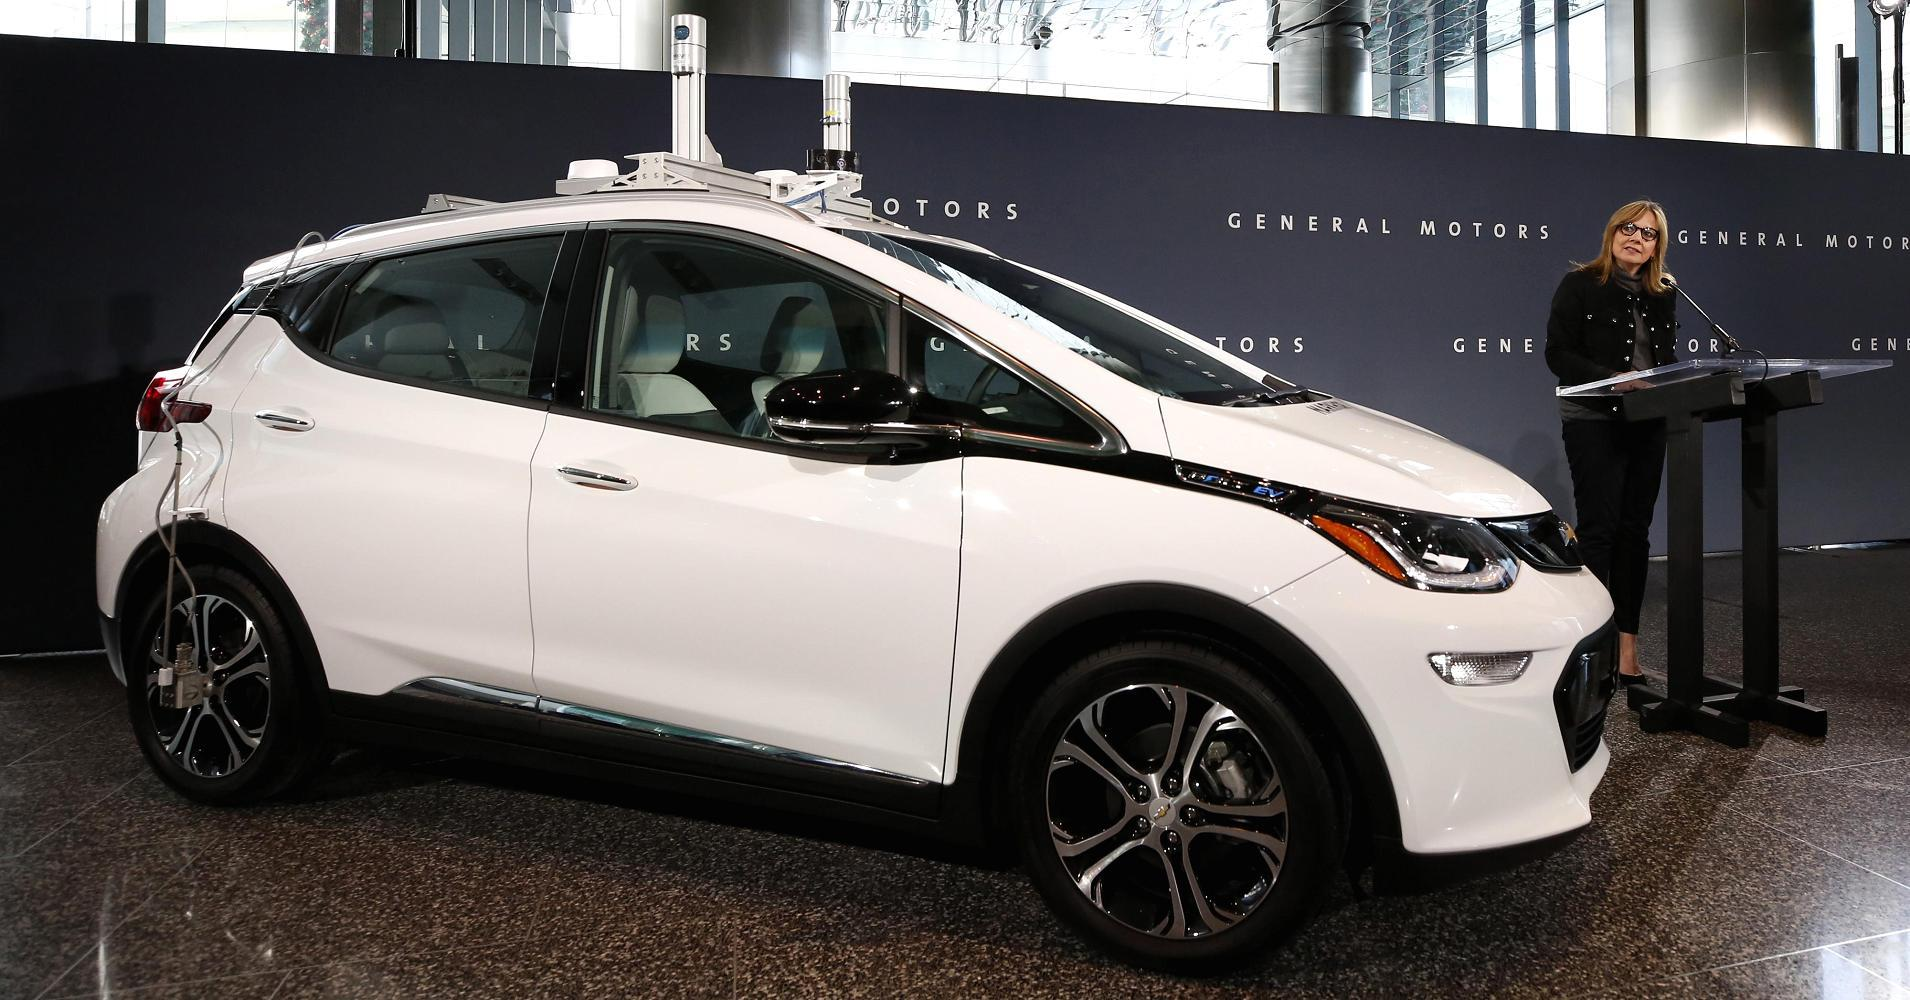 General motors to ramp up electric vehicle plans 20 new for General motors cars models